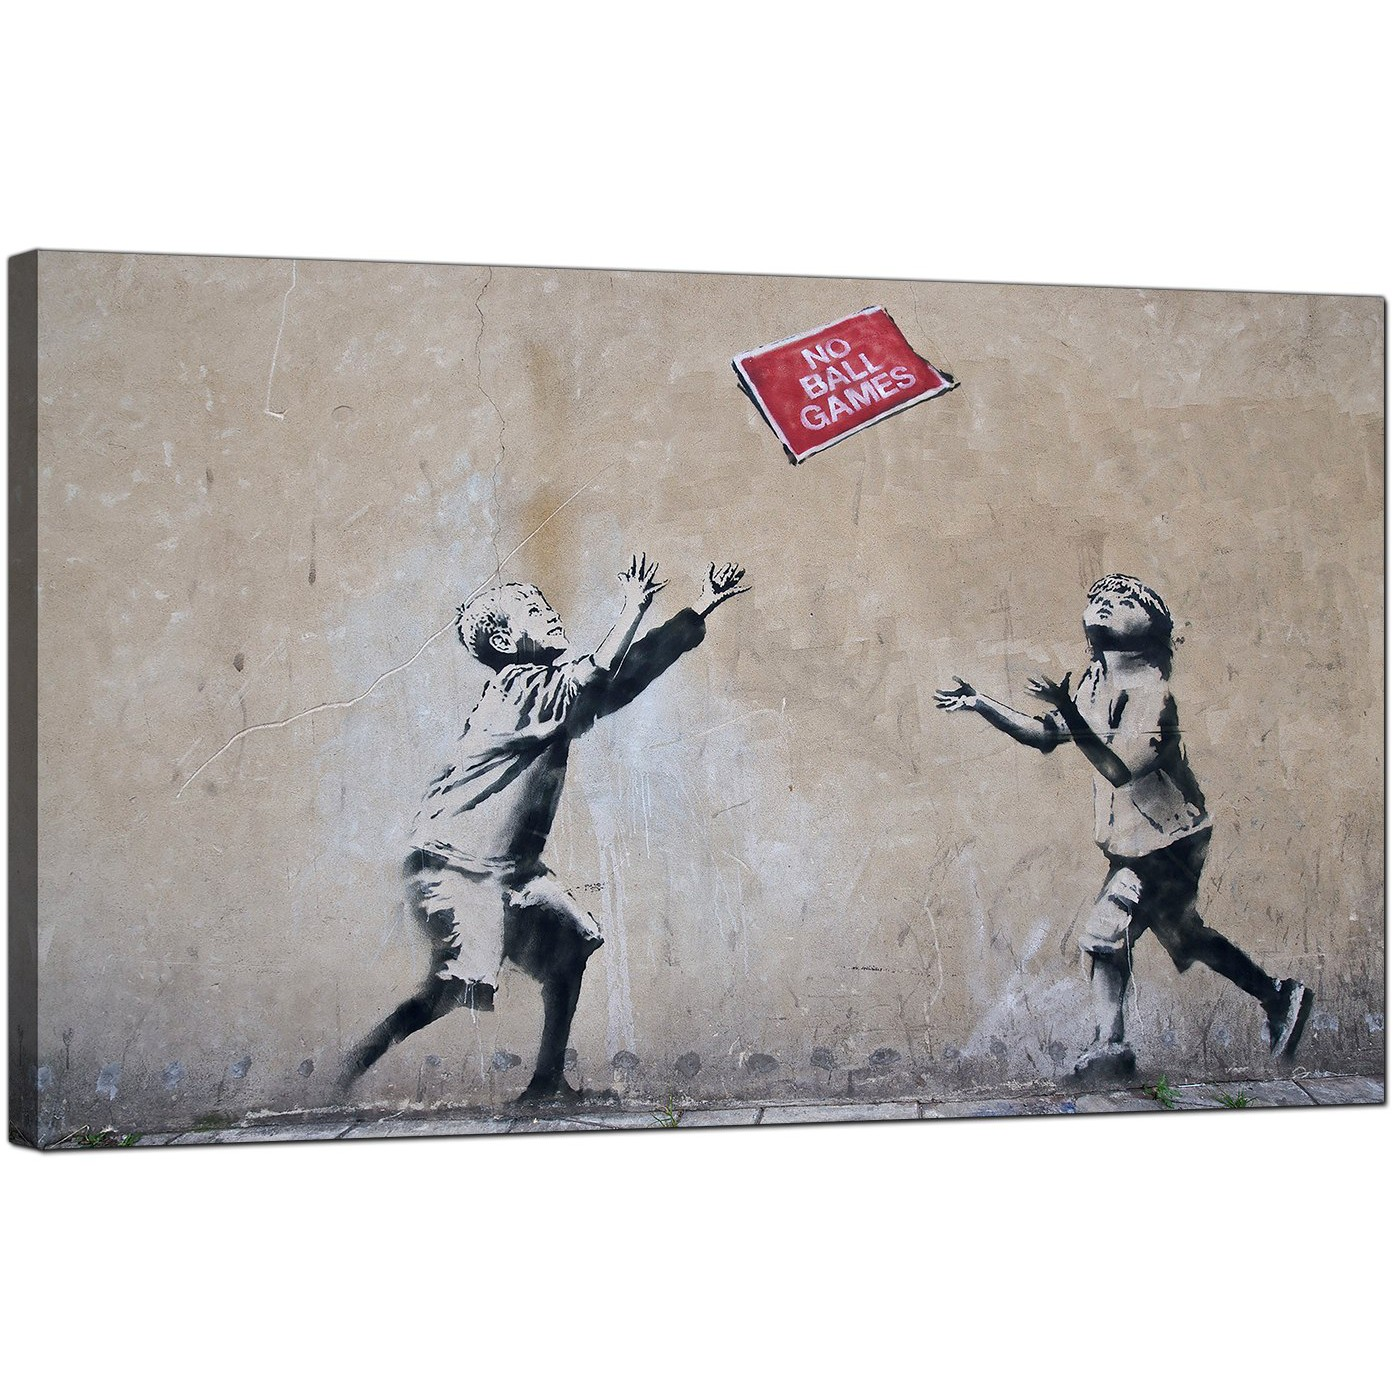 Display Gallery Item 4; Banksy Canvas Pictures - Children Playing With No Ball  Games Sign - Urban Art Display Gallery Item 5